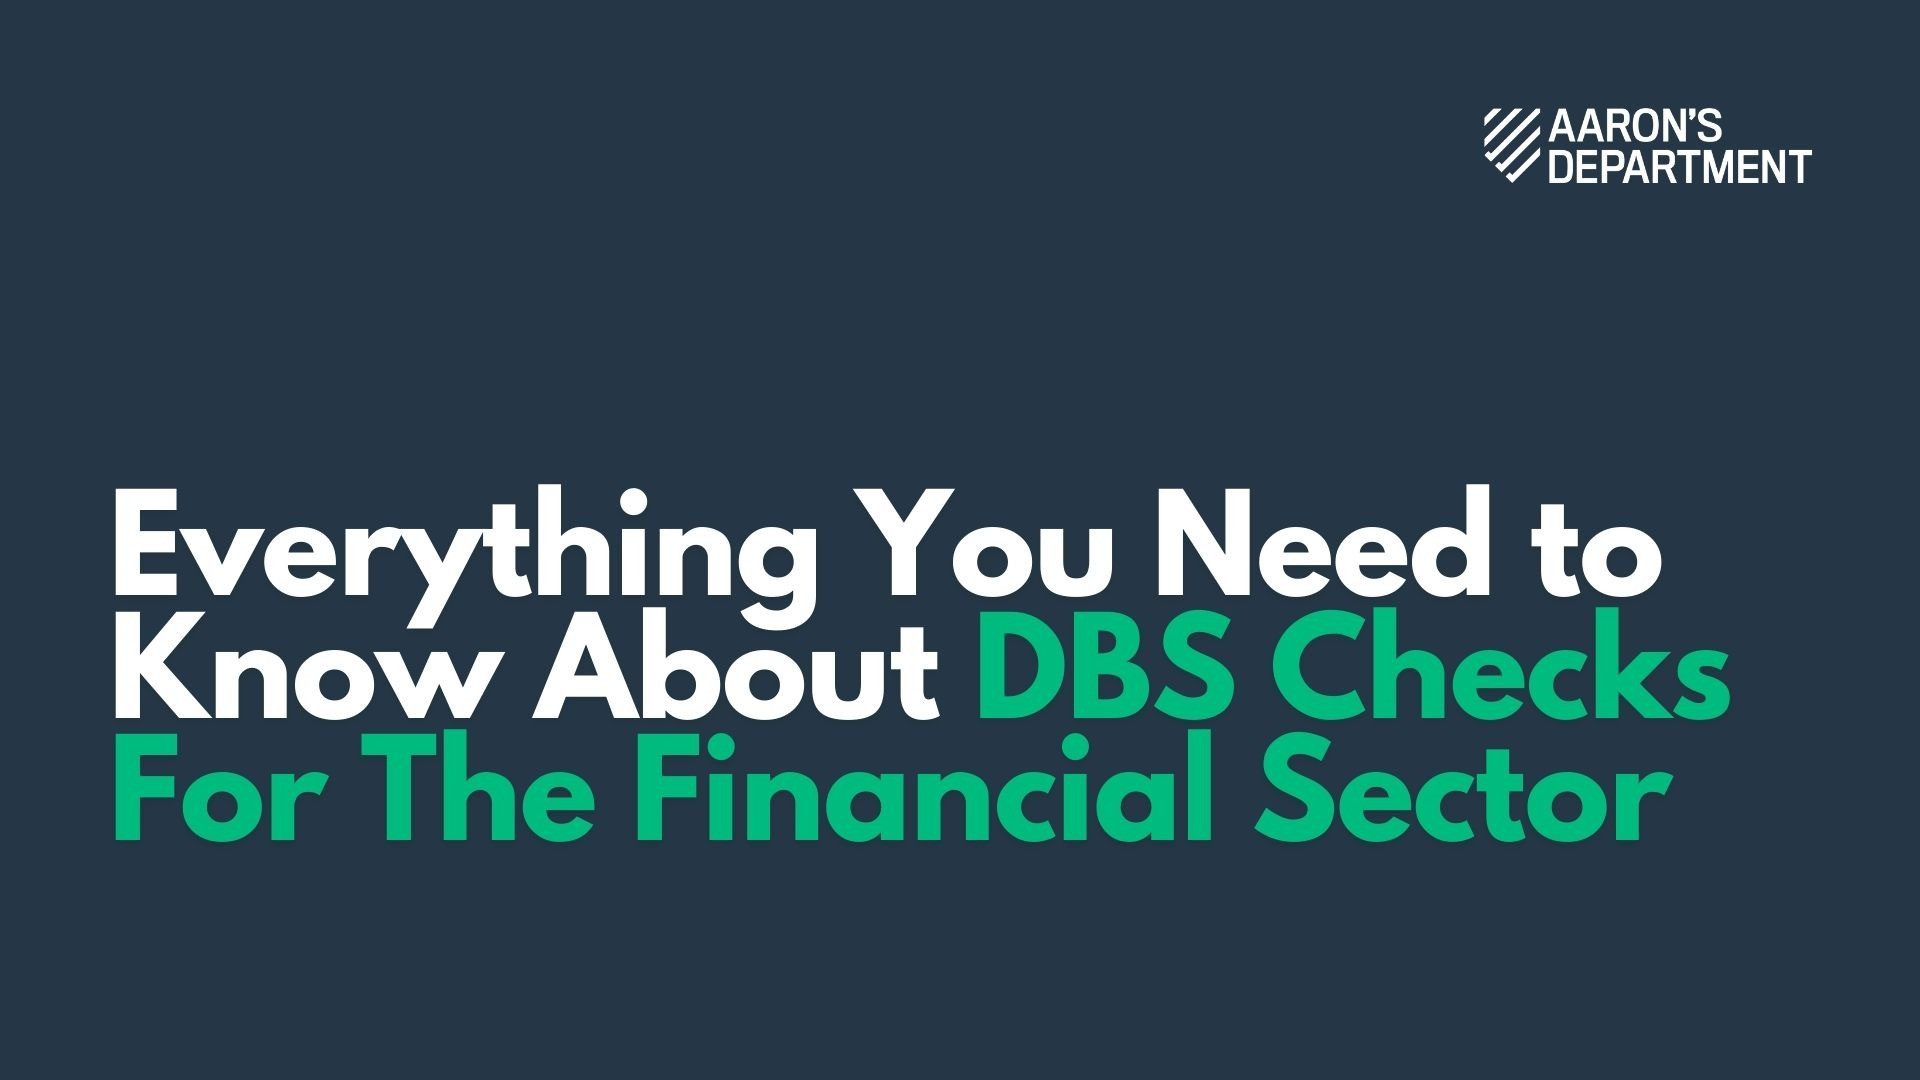 dbs checks for the financial sector